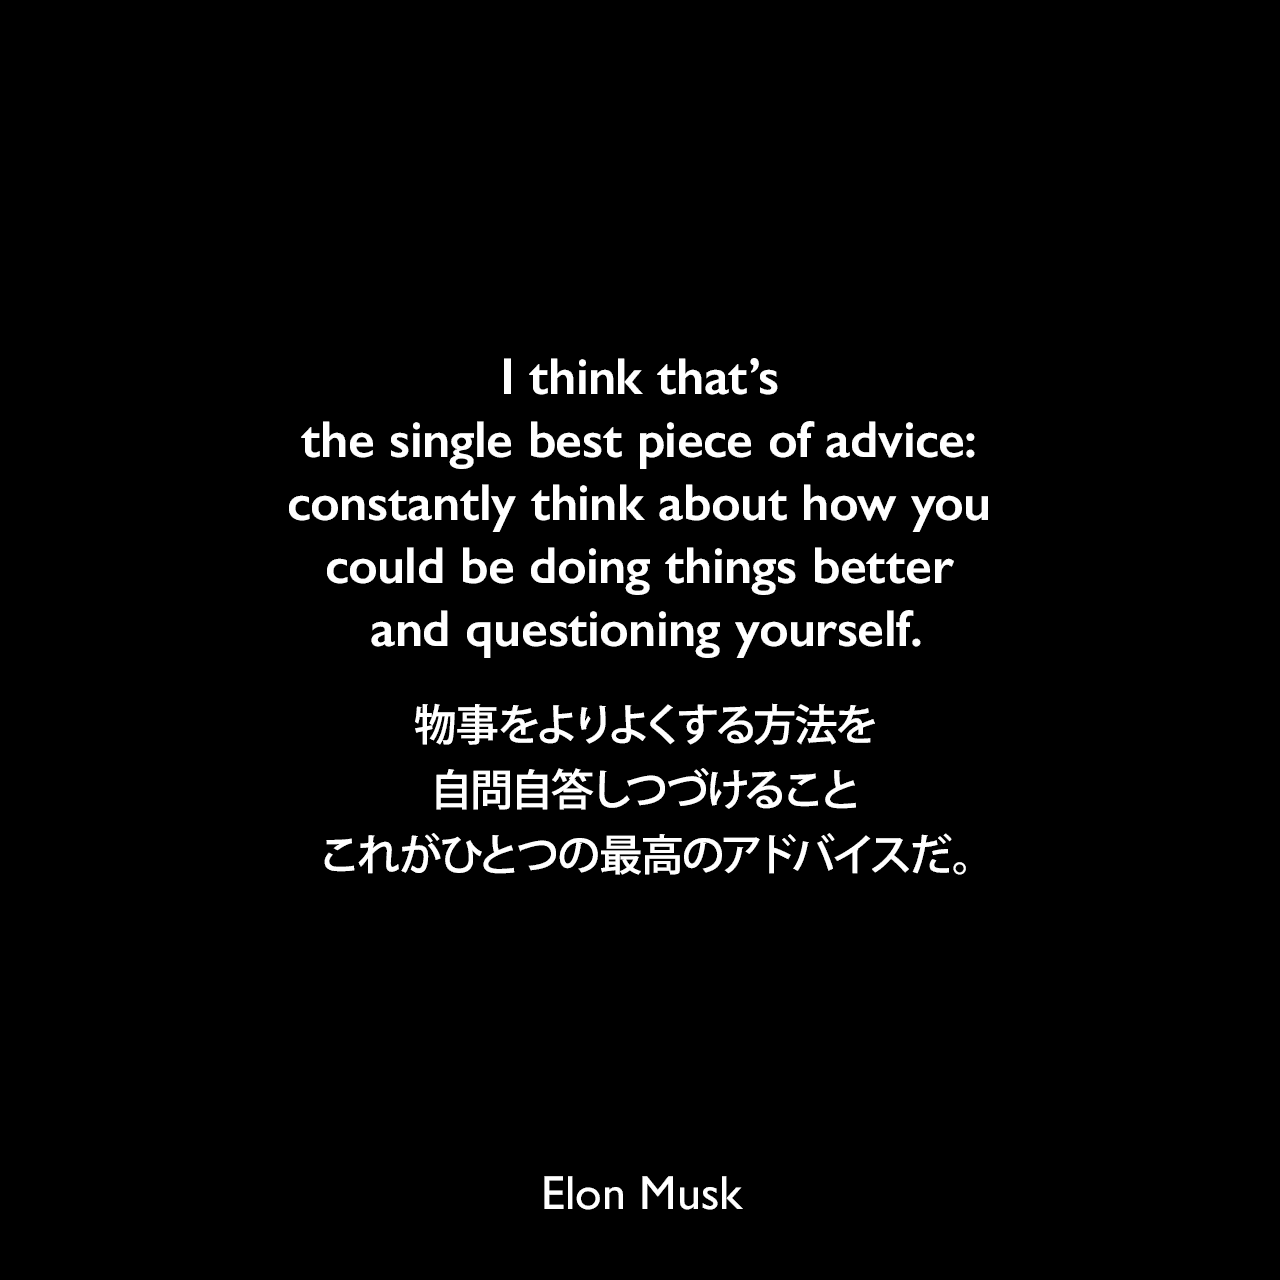 I think that's the single best piece of advice: constantly think about how you could be doing things better and questioning yourself.物事をよりよくする方法を自問自答しつづけること、これがひとつの最高のアドバイスだ。Elon Musk